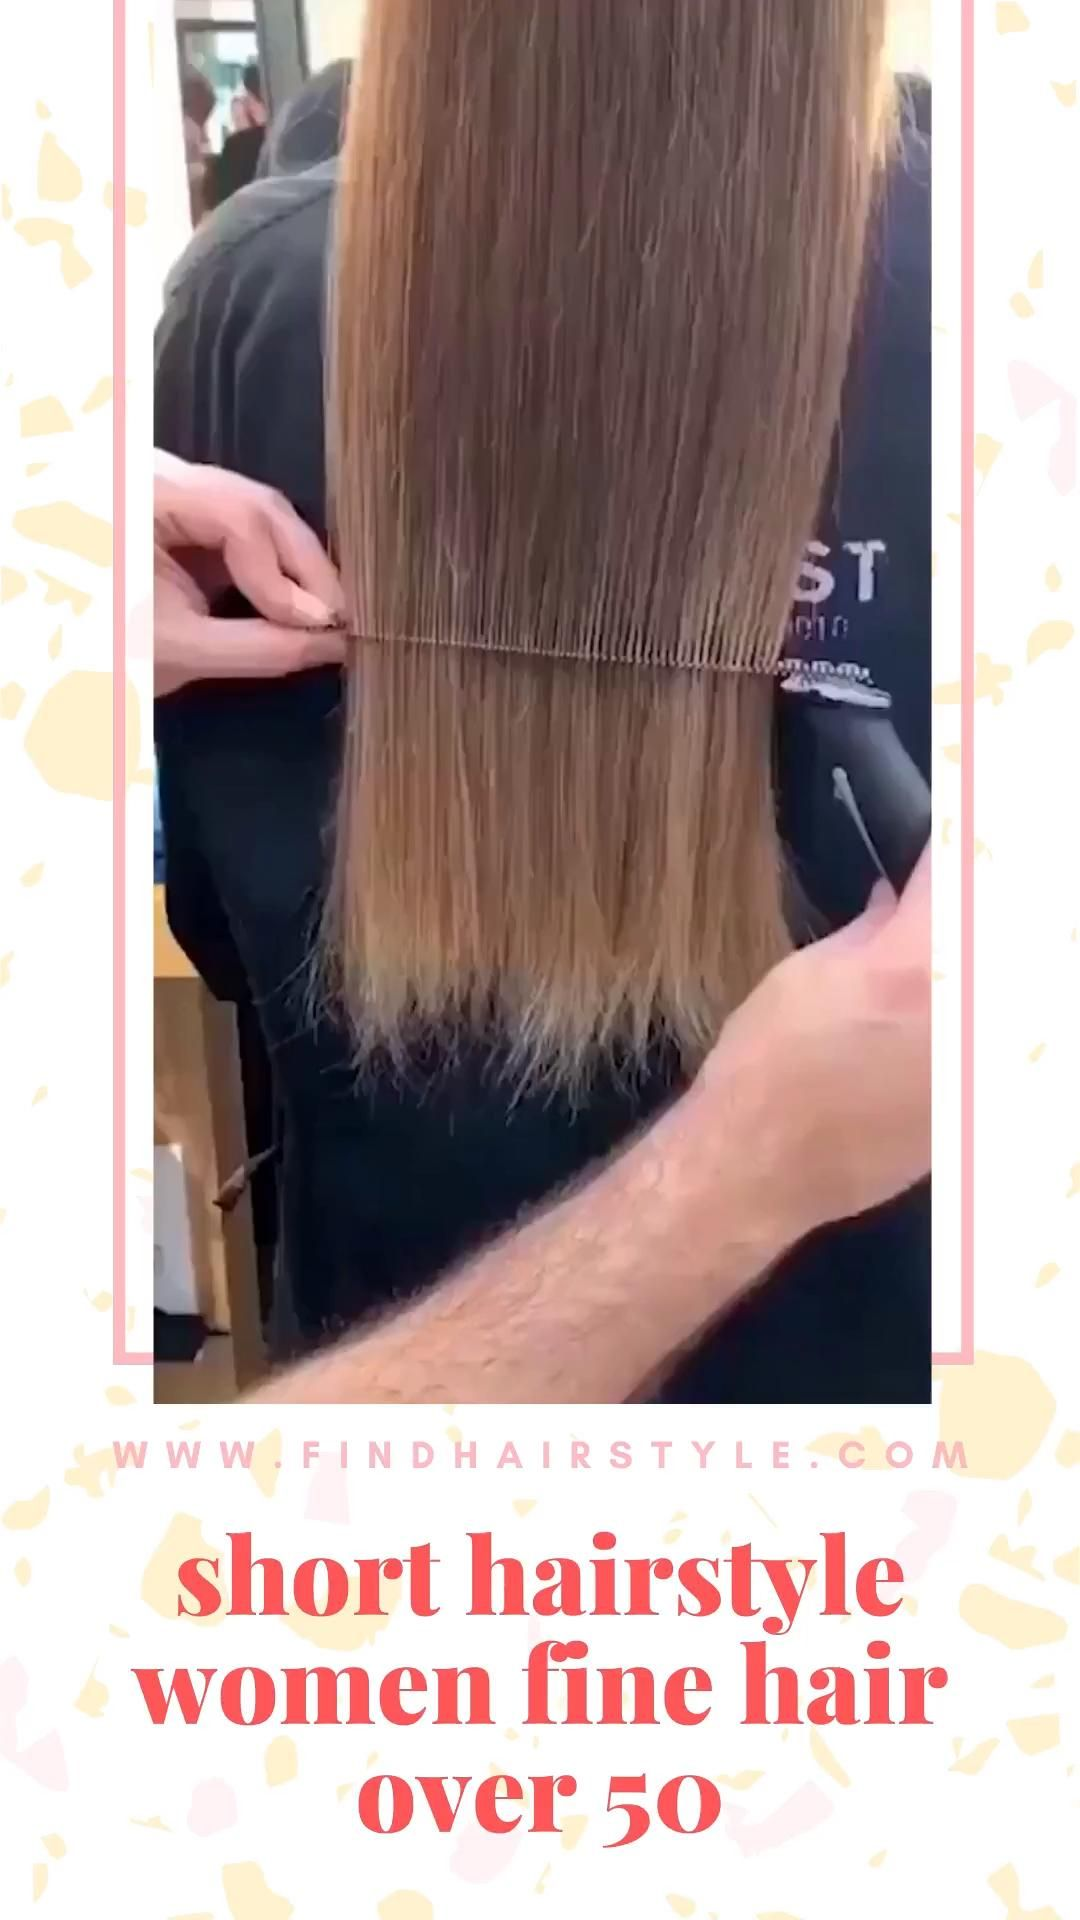 Best Modern Hairstyles and Haircuts for Women Over